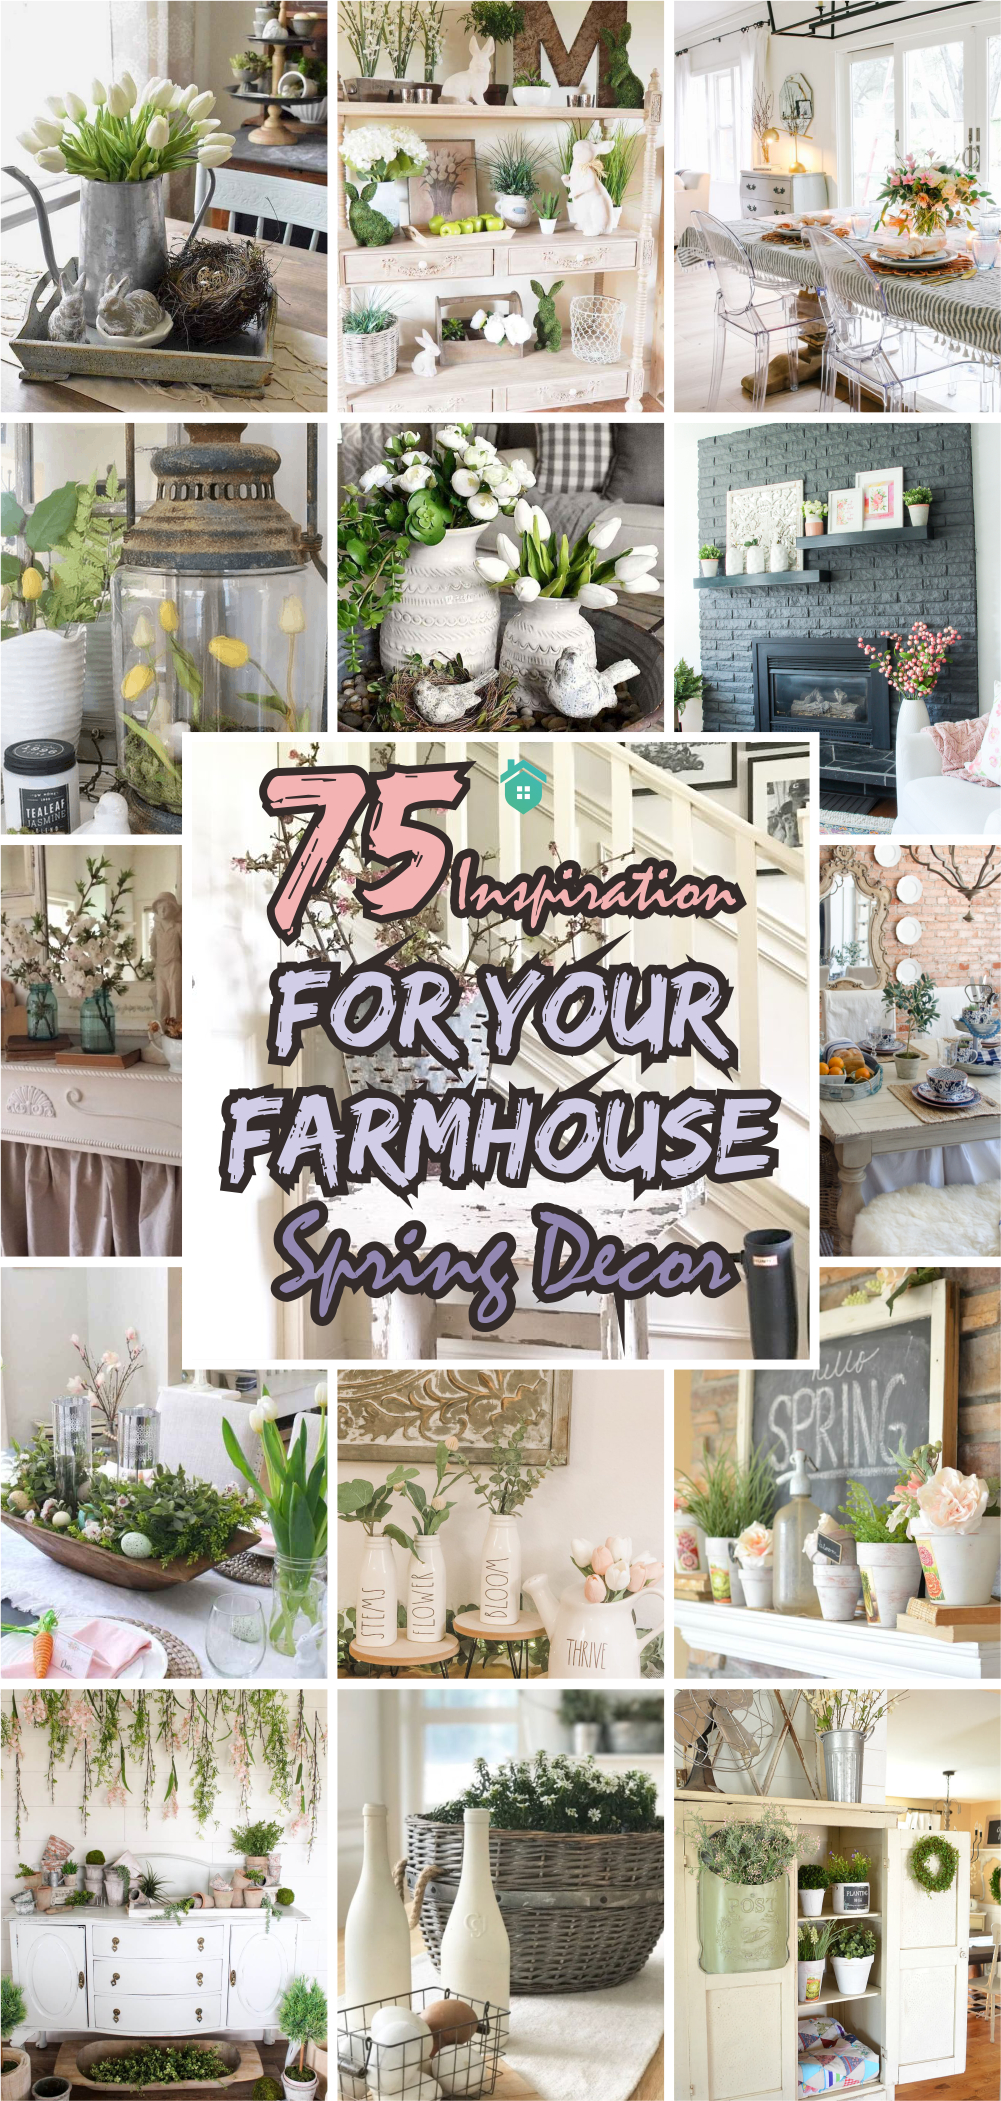 75 inspiration for your farmhouse spring decor5